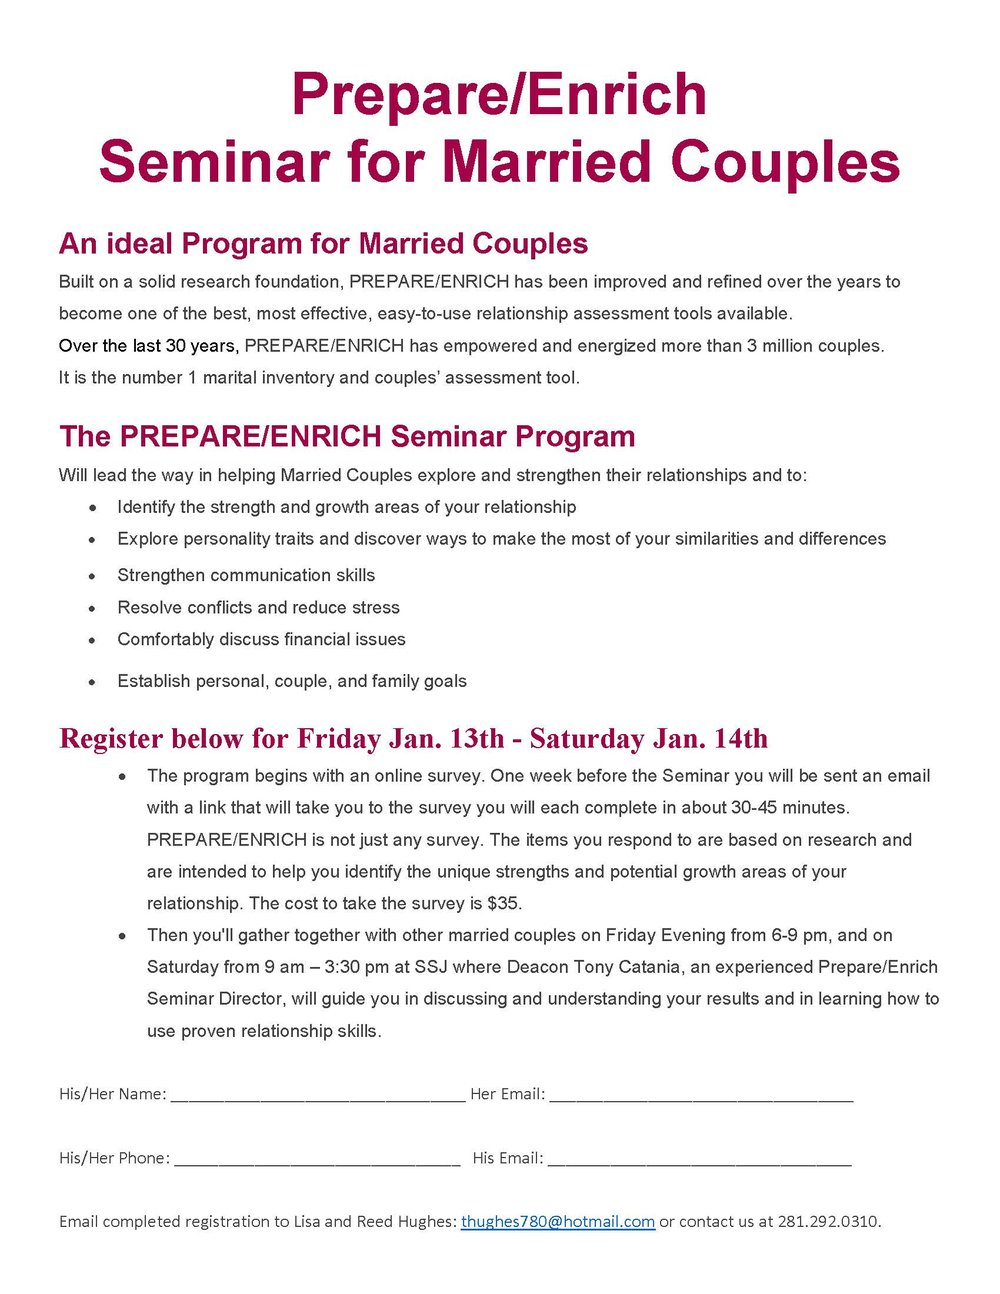 Marriage Enrichment Workshop for Married Couples (002).jpg